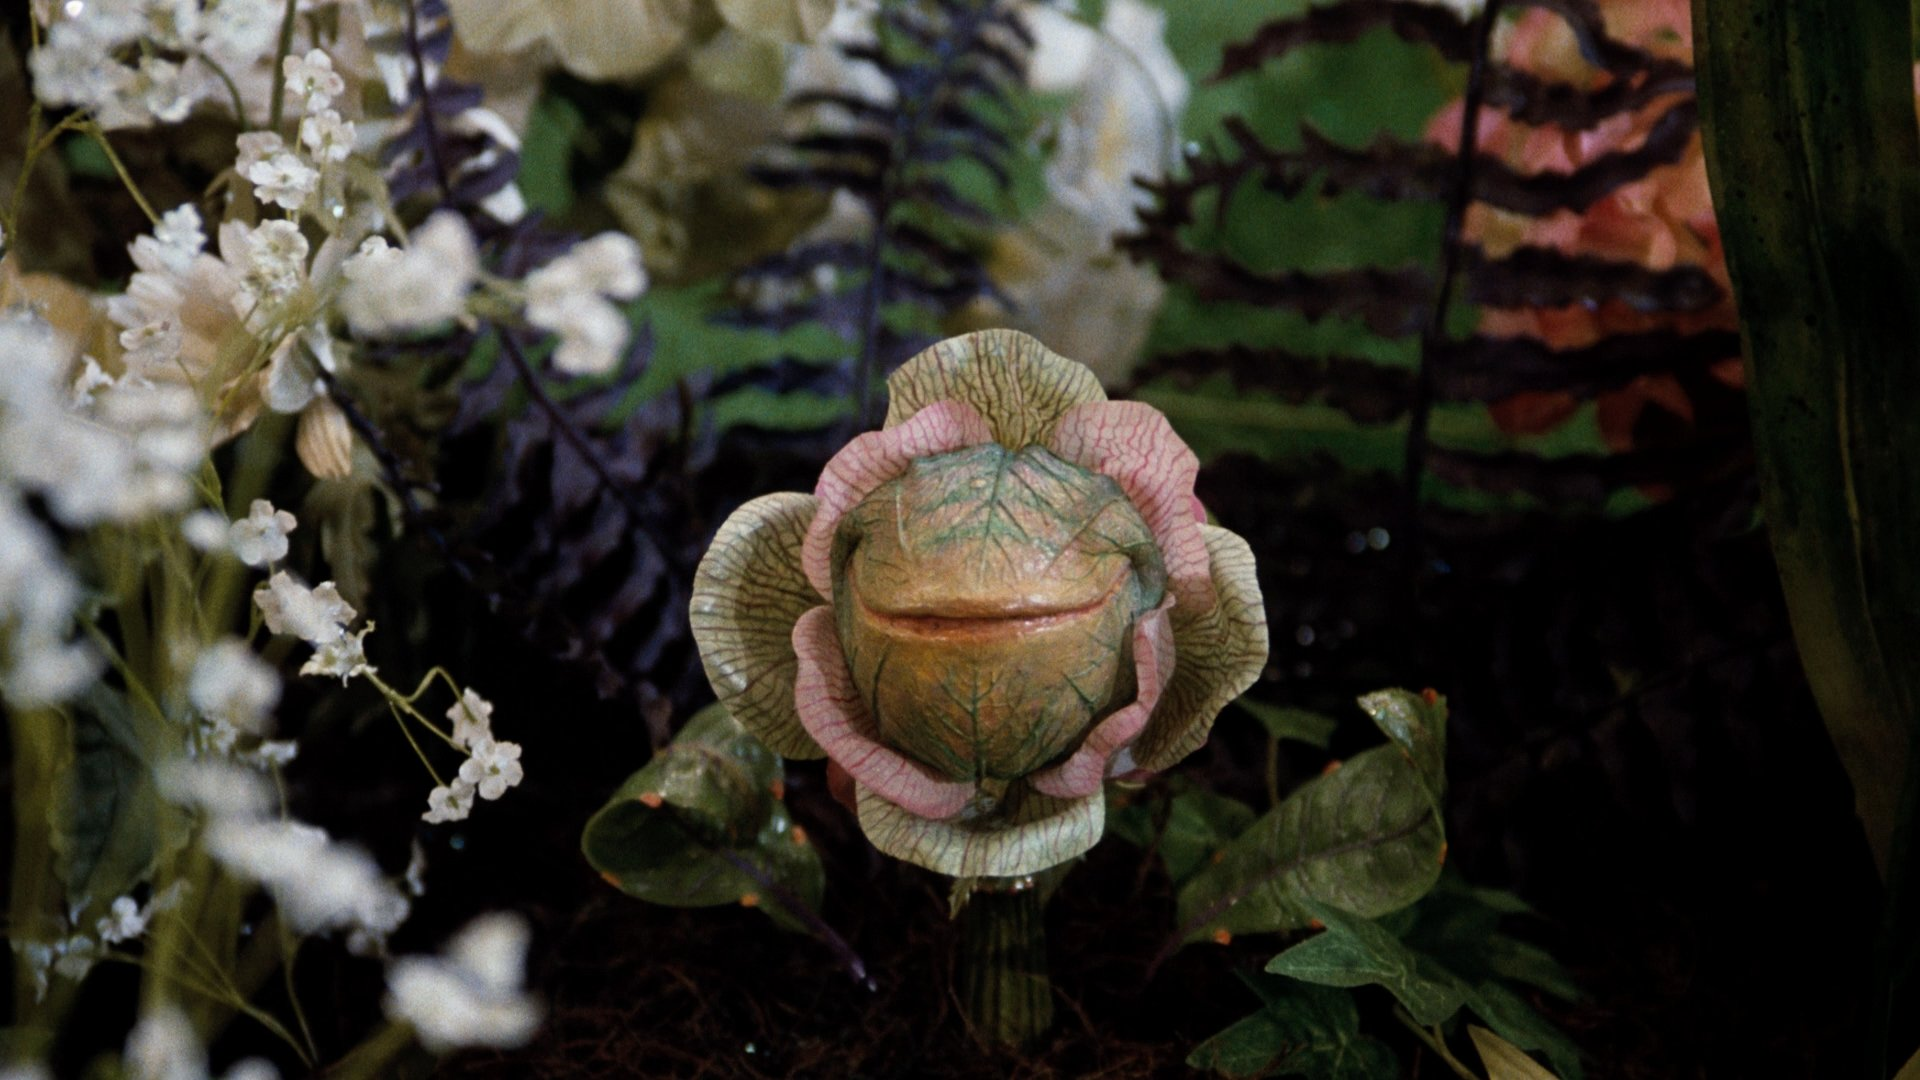 17 25 Things You Never Knew About Little Shop of Horrors